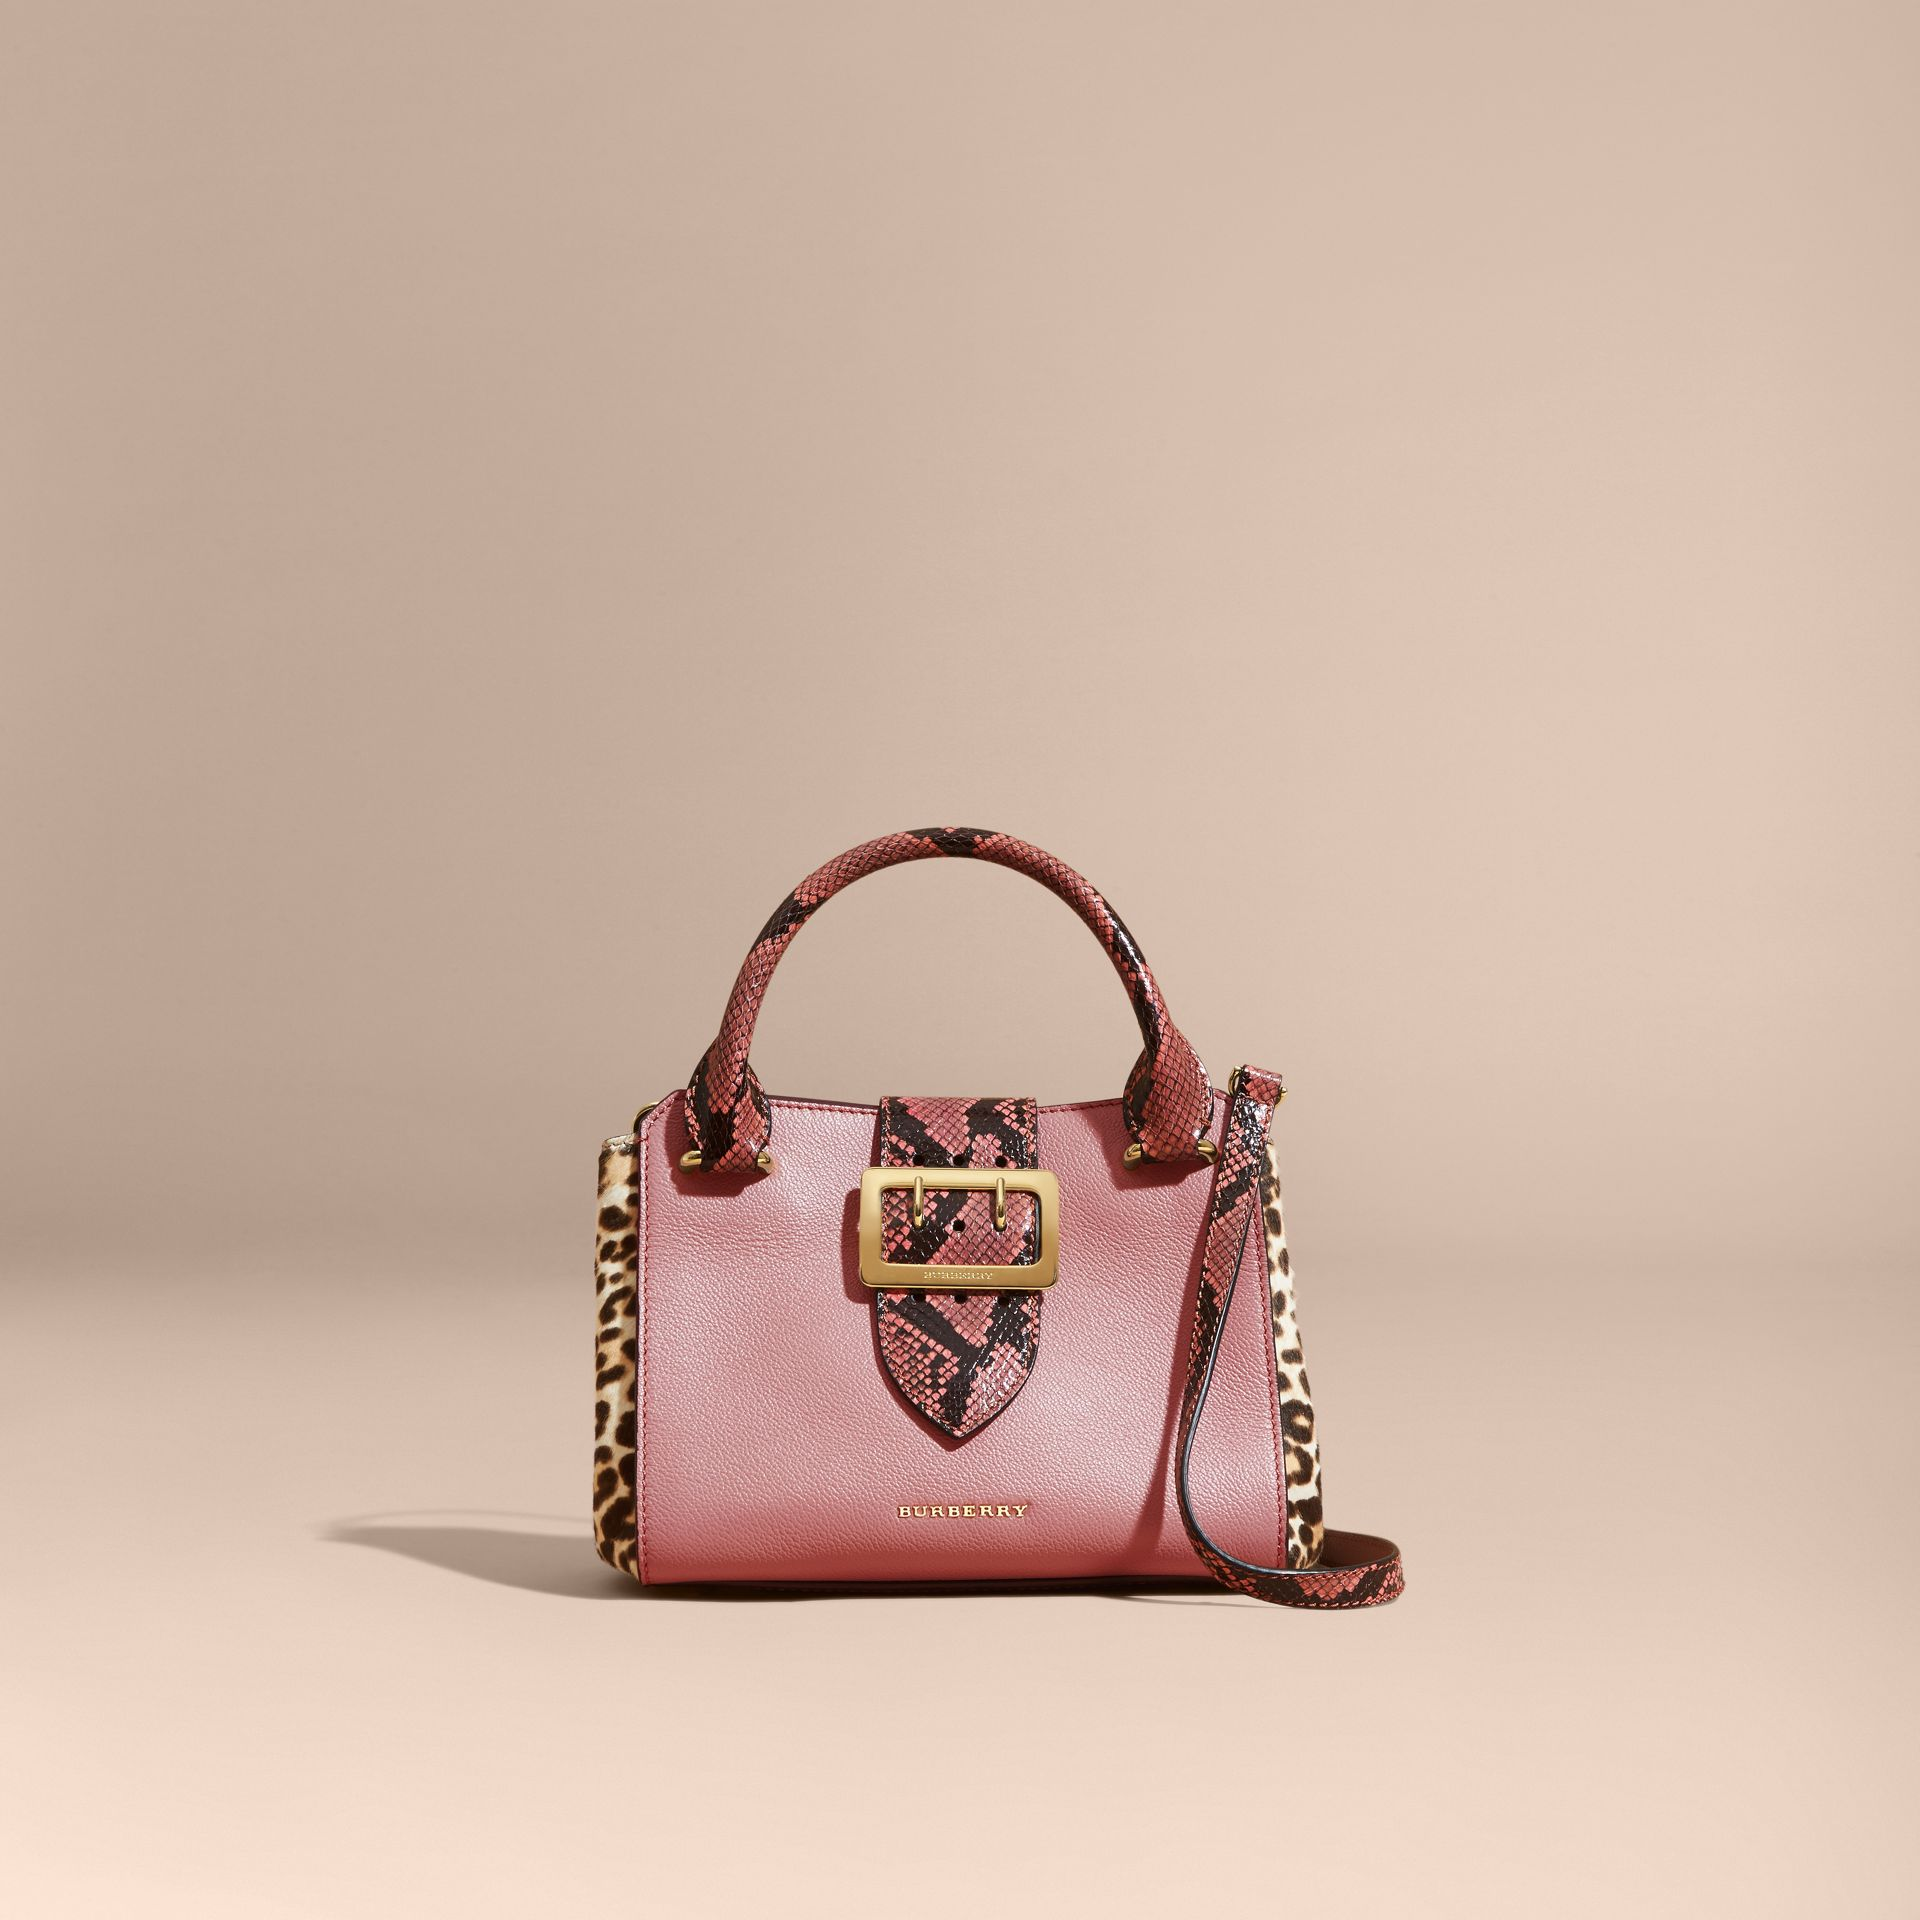 Dusty pink The Small Buckle Tote in Leather and  Leopard-print Calfskin Dusty Pink - gallery image 9